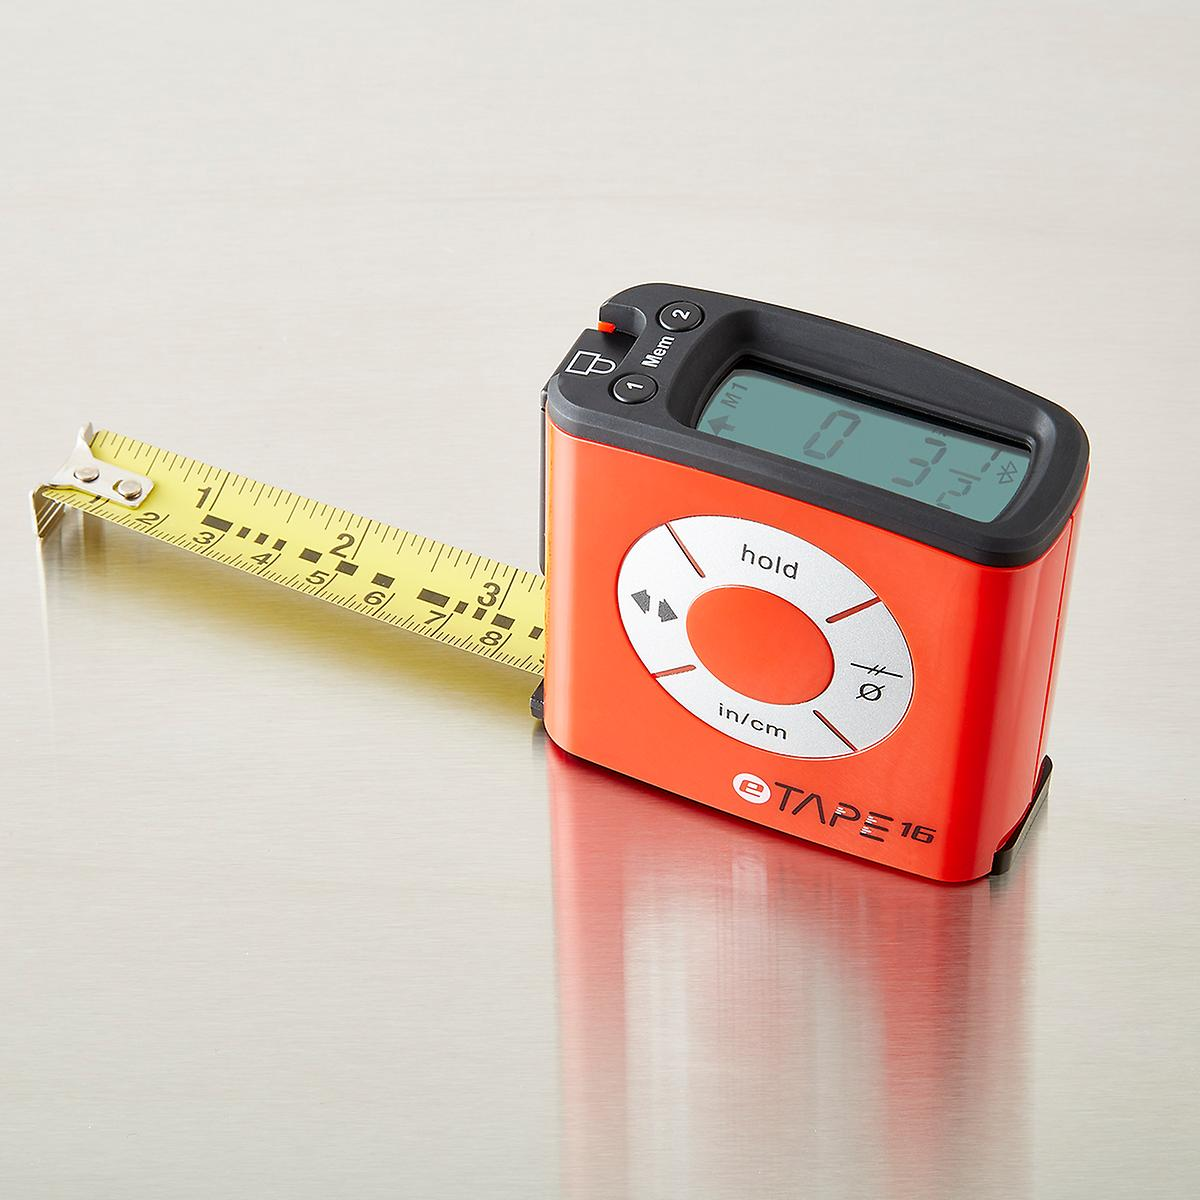 16' E Tape16 Digital Tape Measure by Container Store